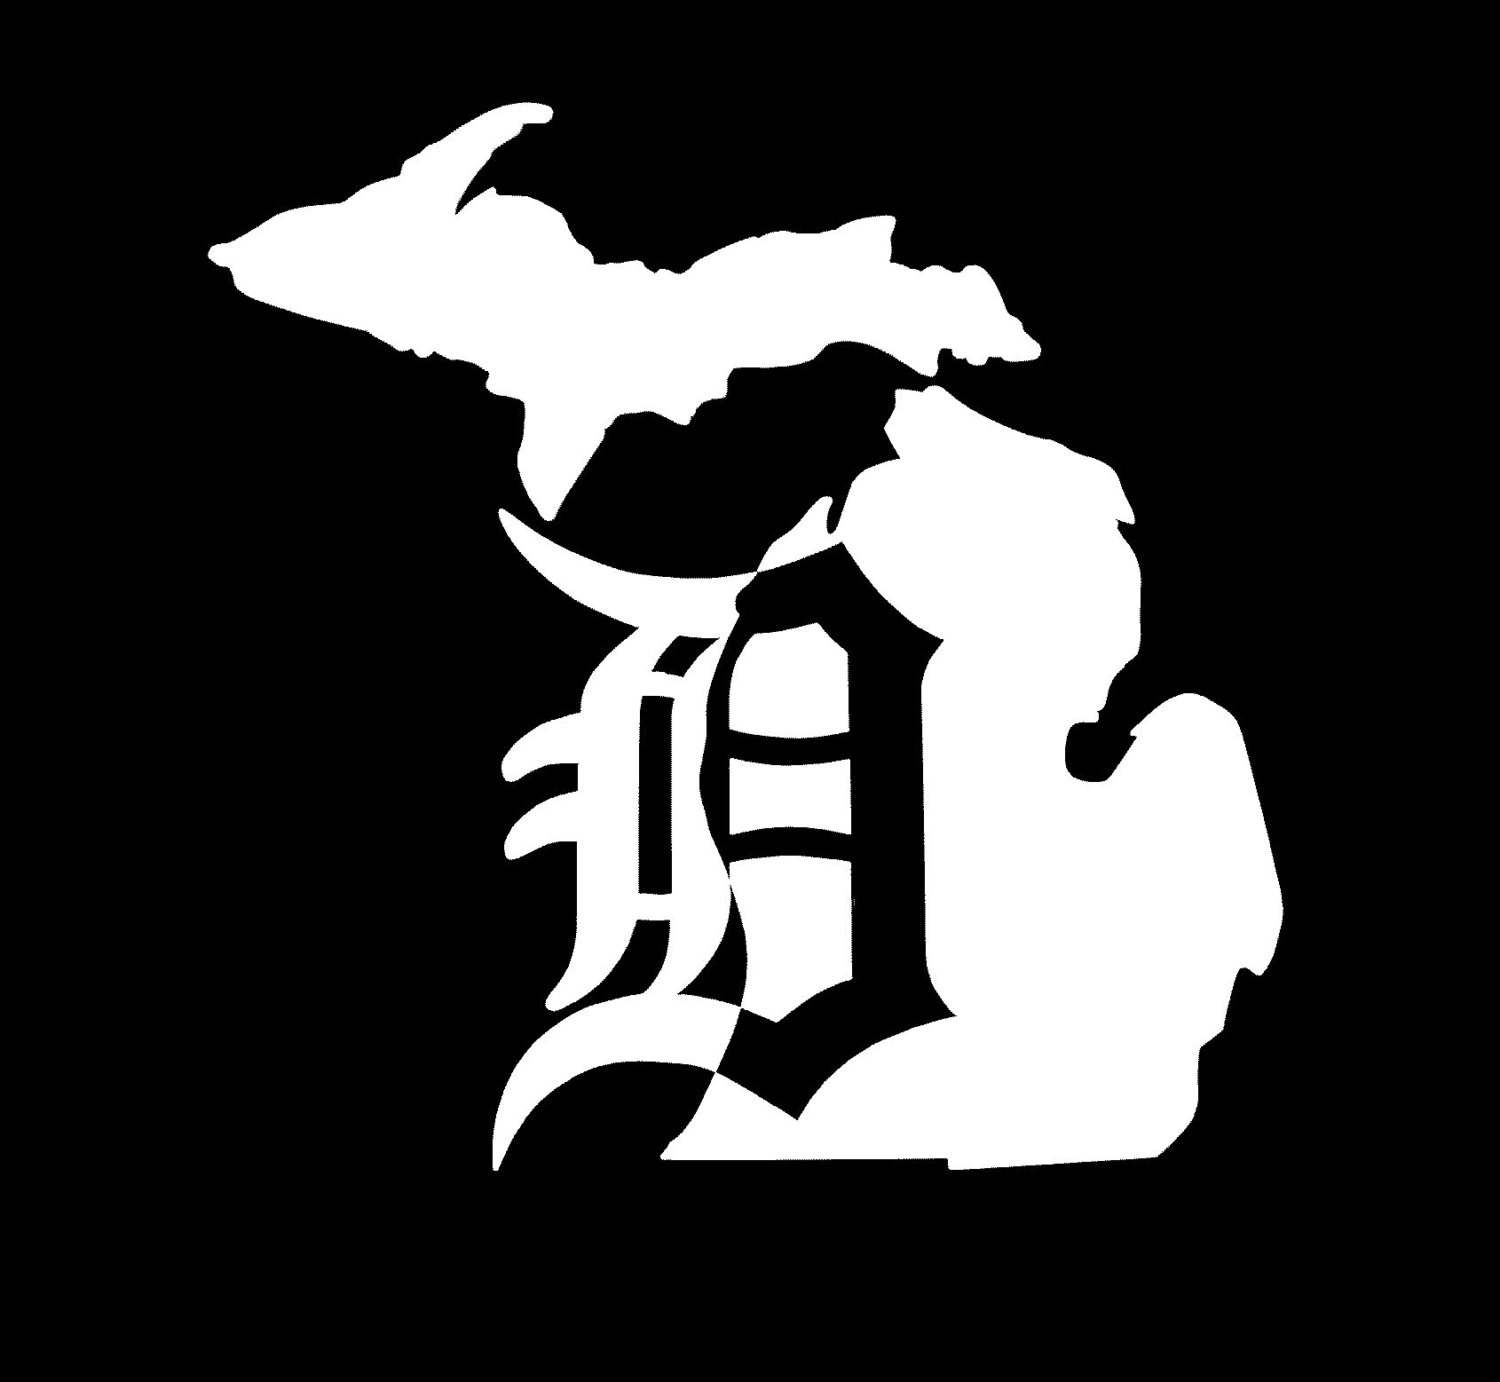 Detroit D Michigan Vinyl Car Window Decal Sticker